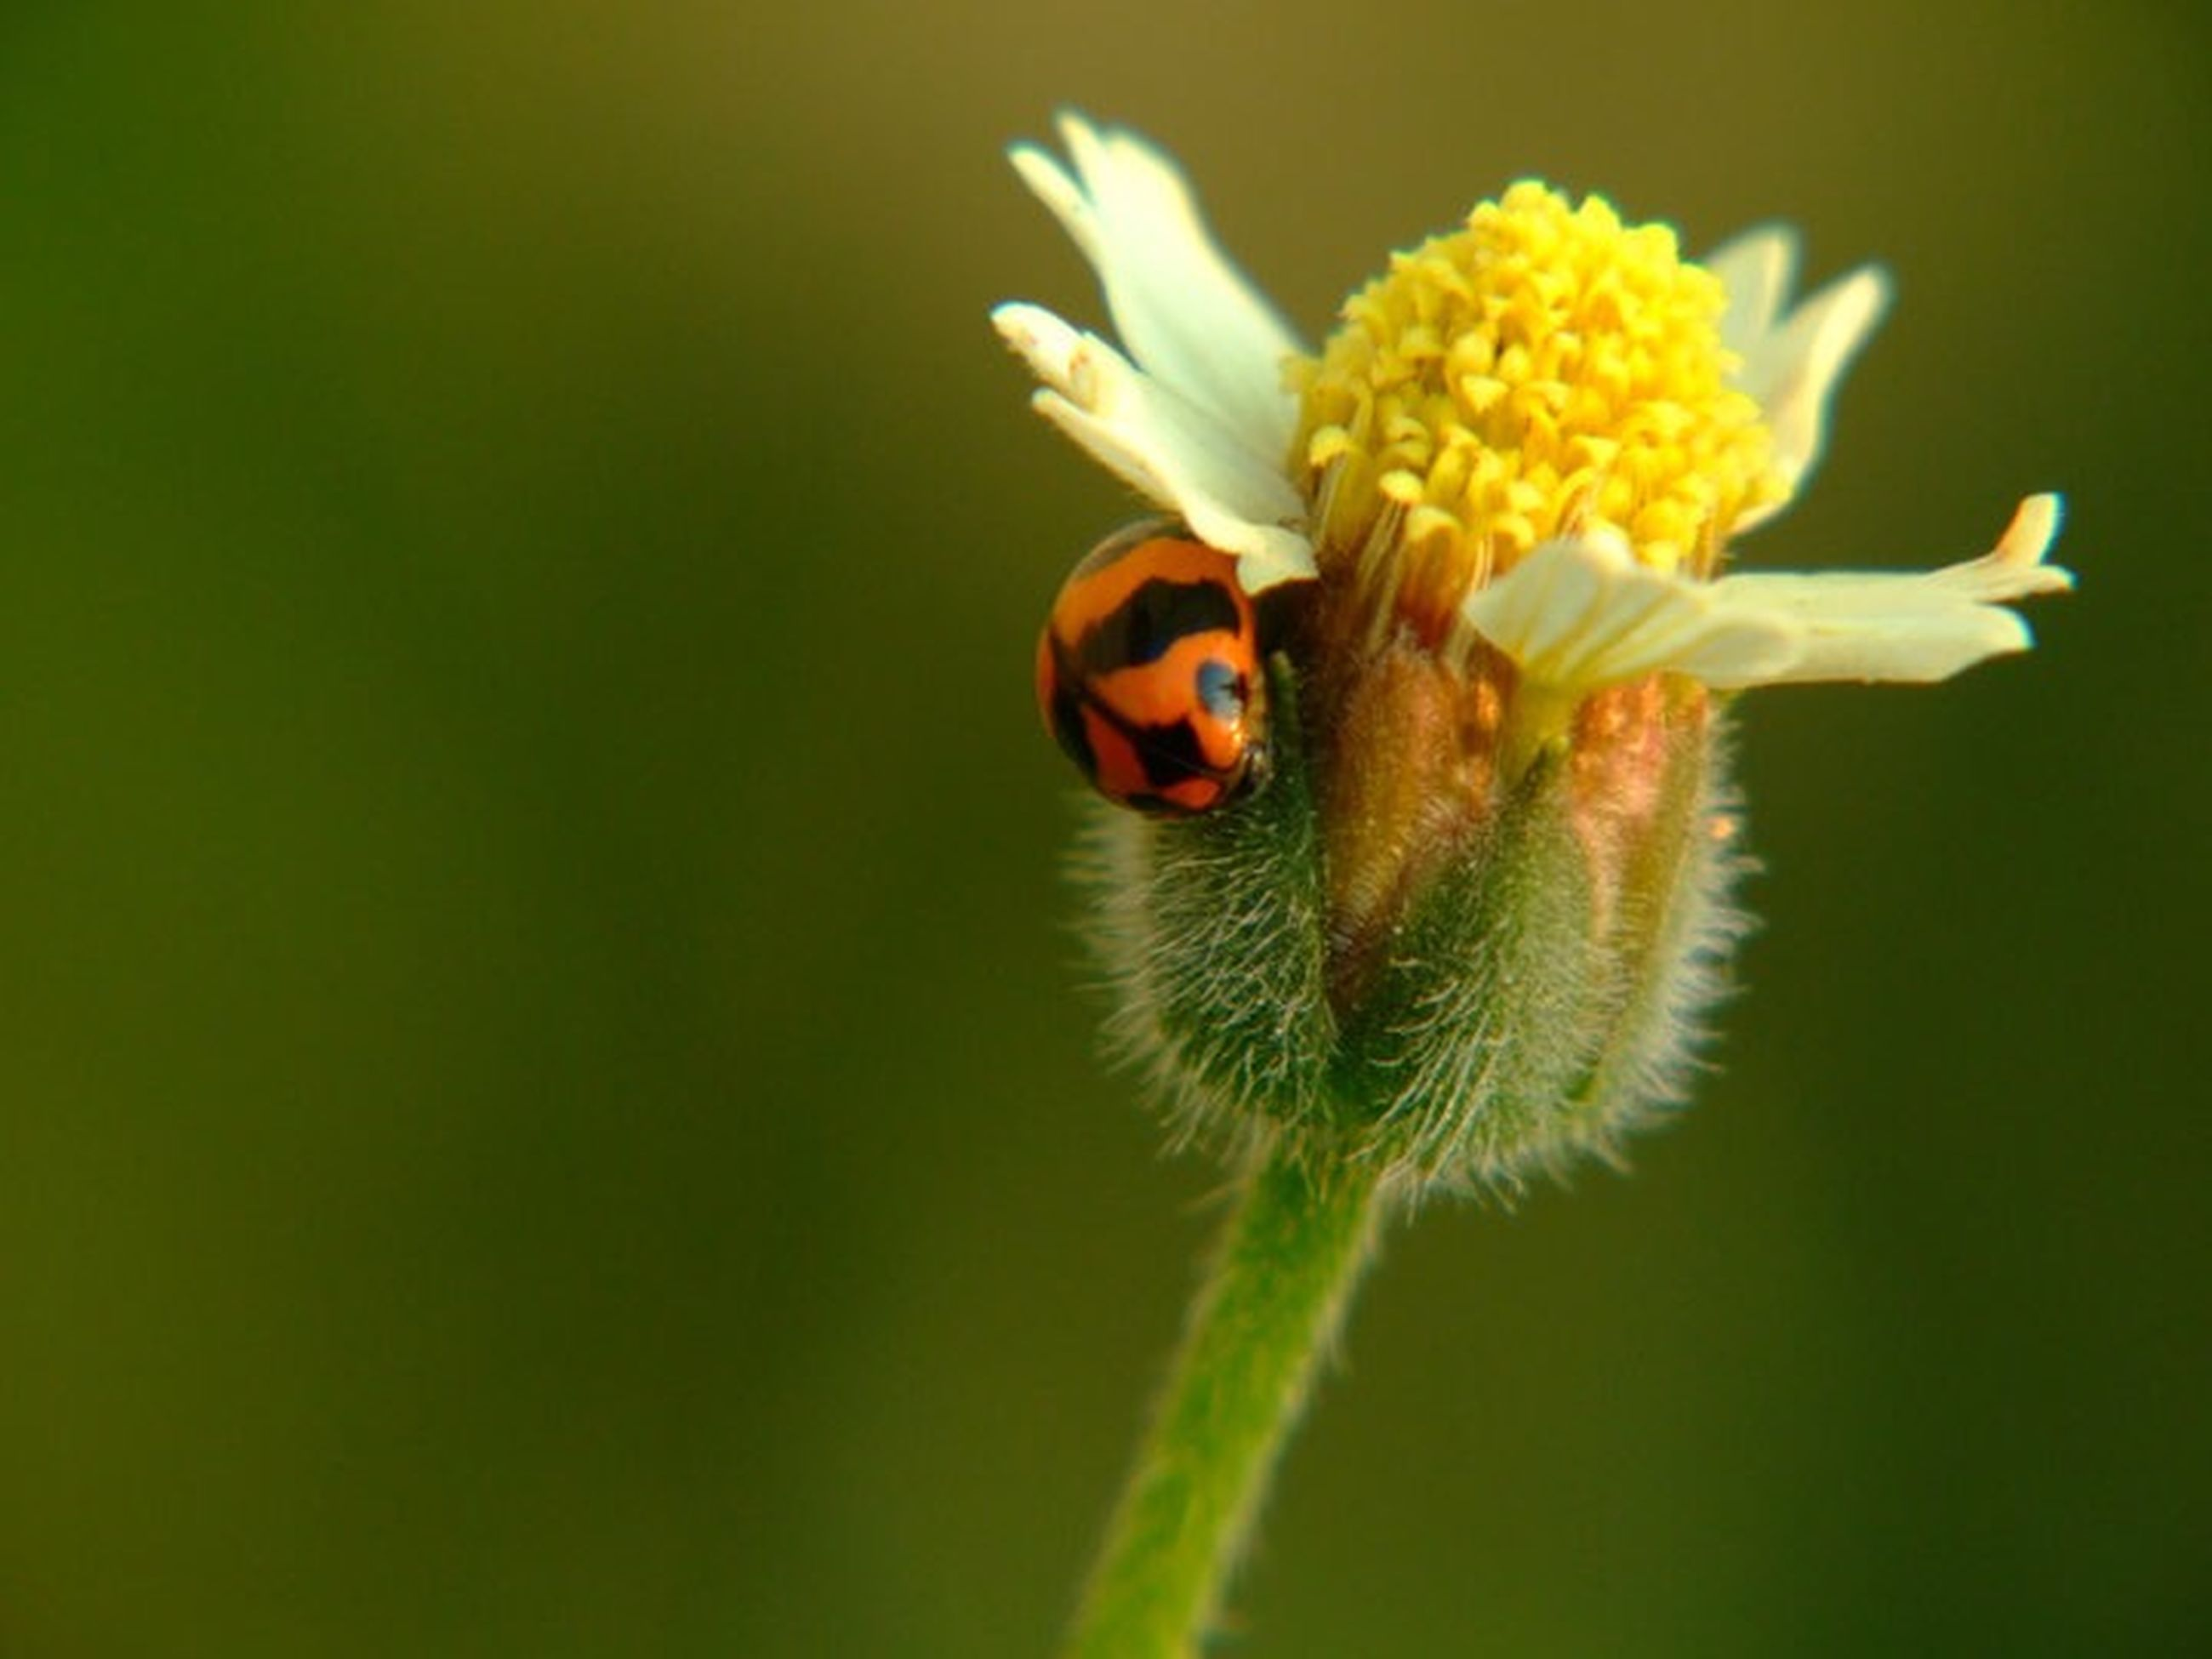 flower, freshness, fragility, petal, flower head, focus on foreground, growth, close-up, beauty in nature, nature, one animal, animal themes, plant, yellow, stem, blooming, wildlife, insect, selective focus, animals in the wild